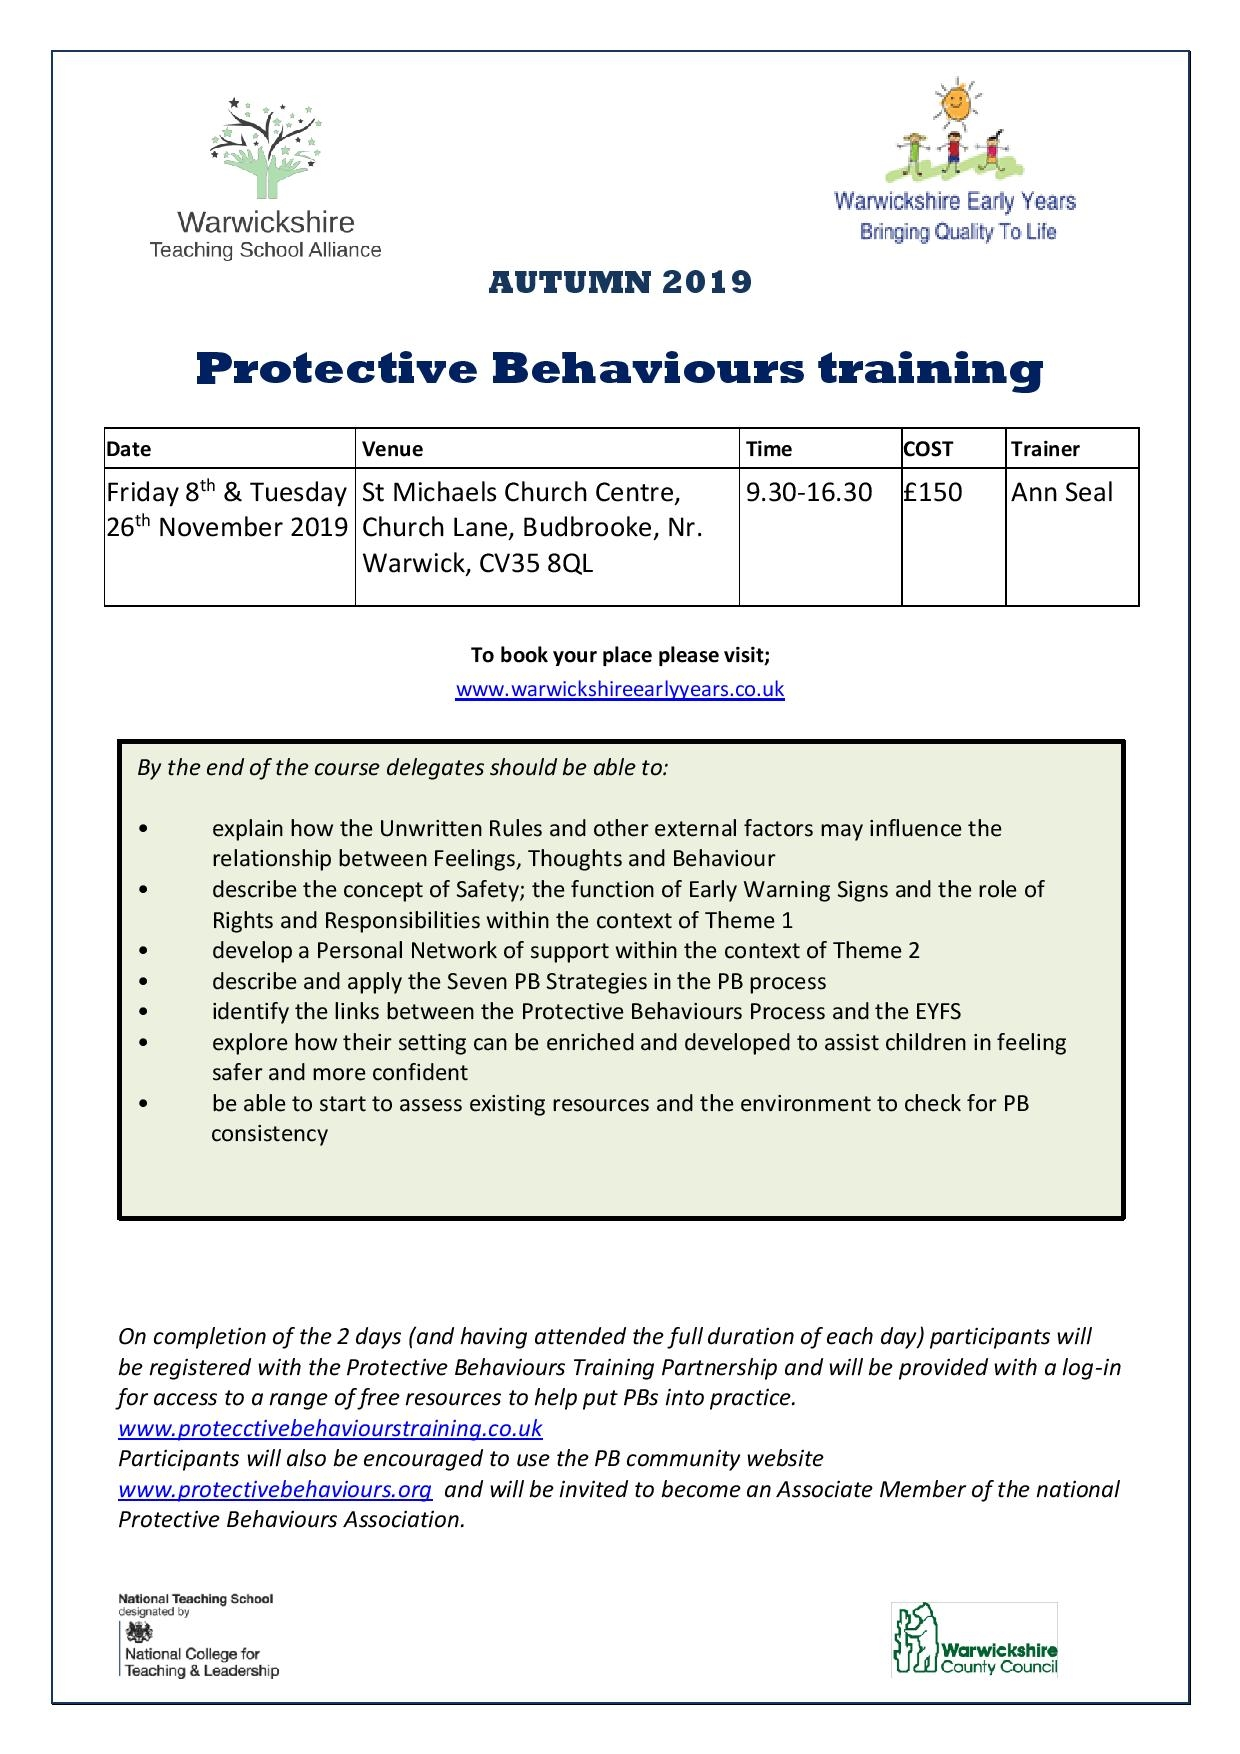 Protective Behaviours training